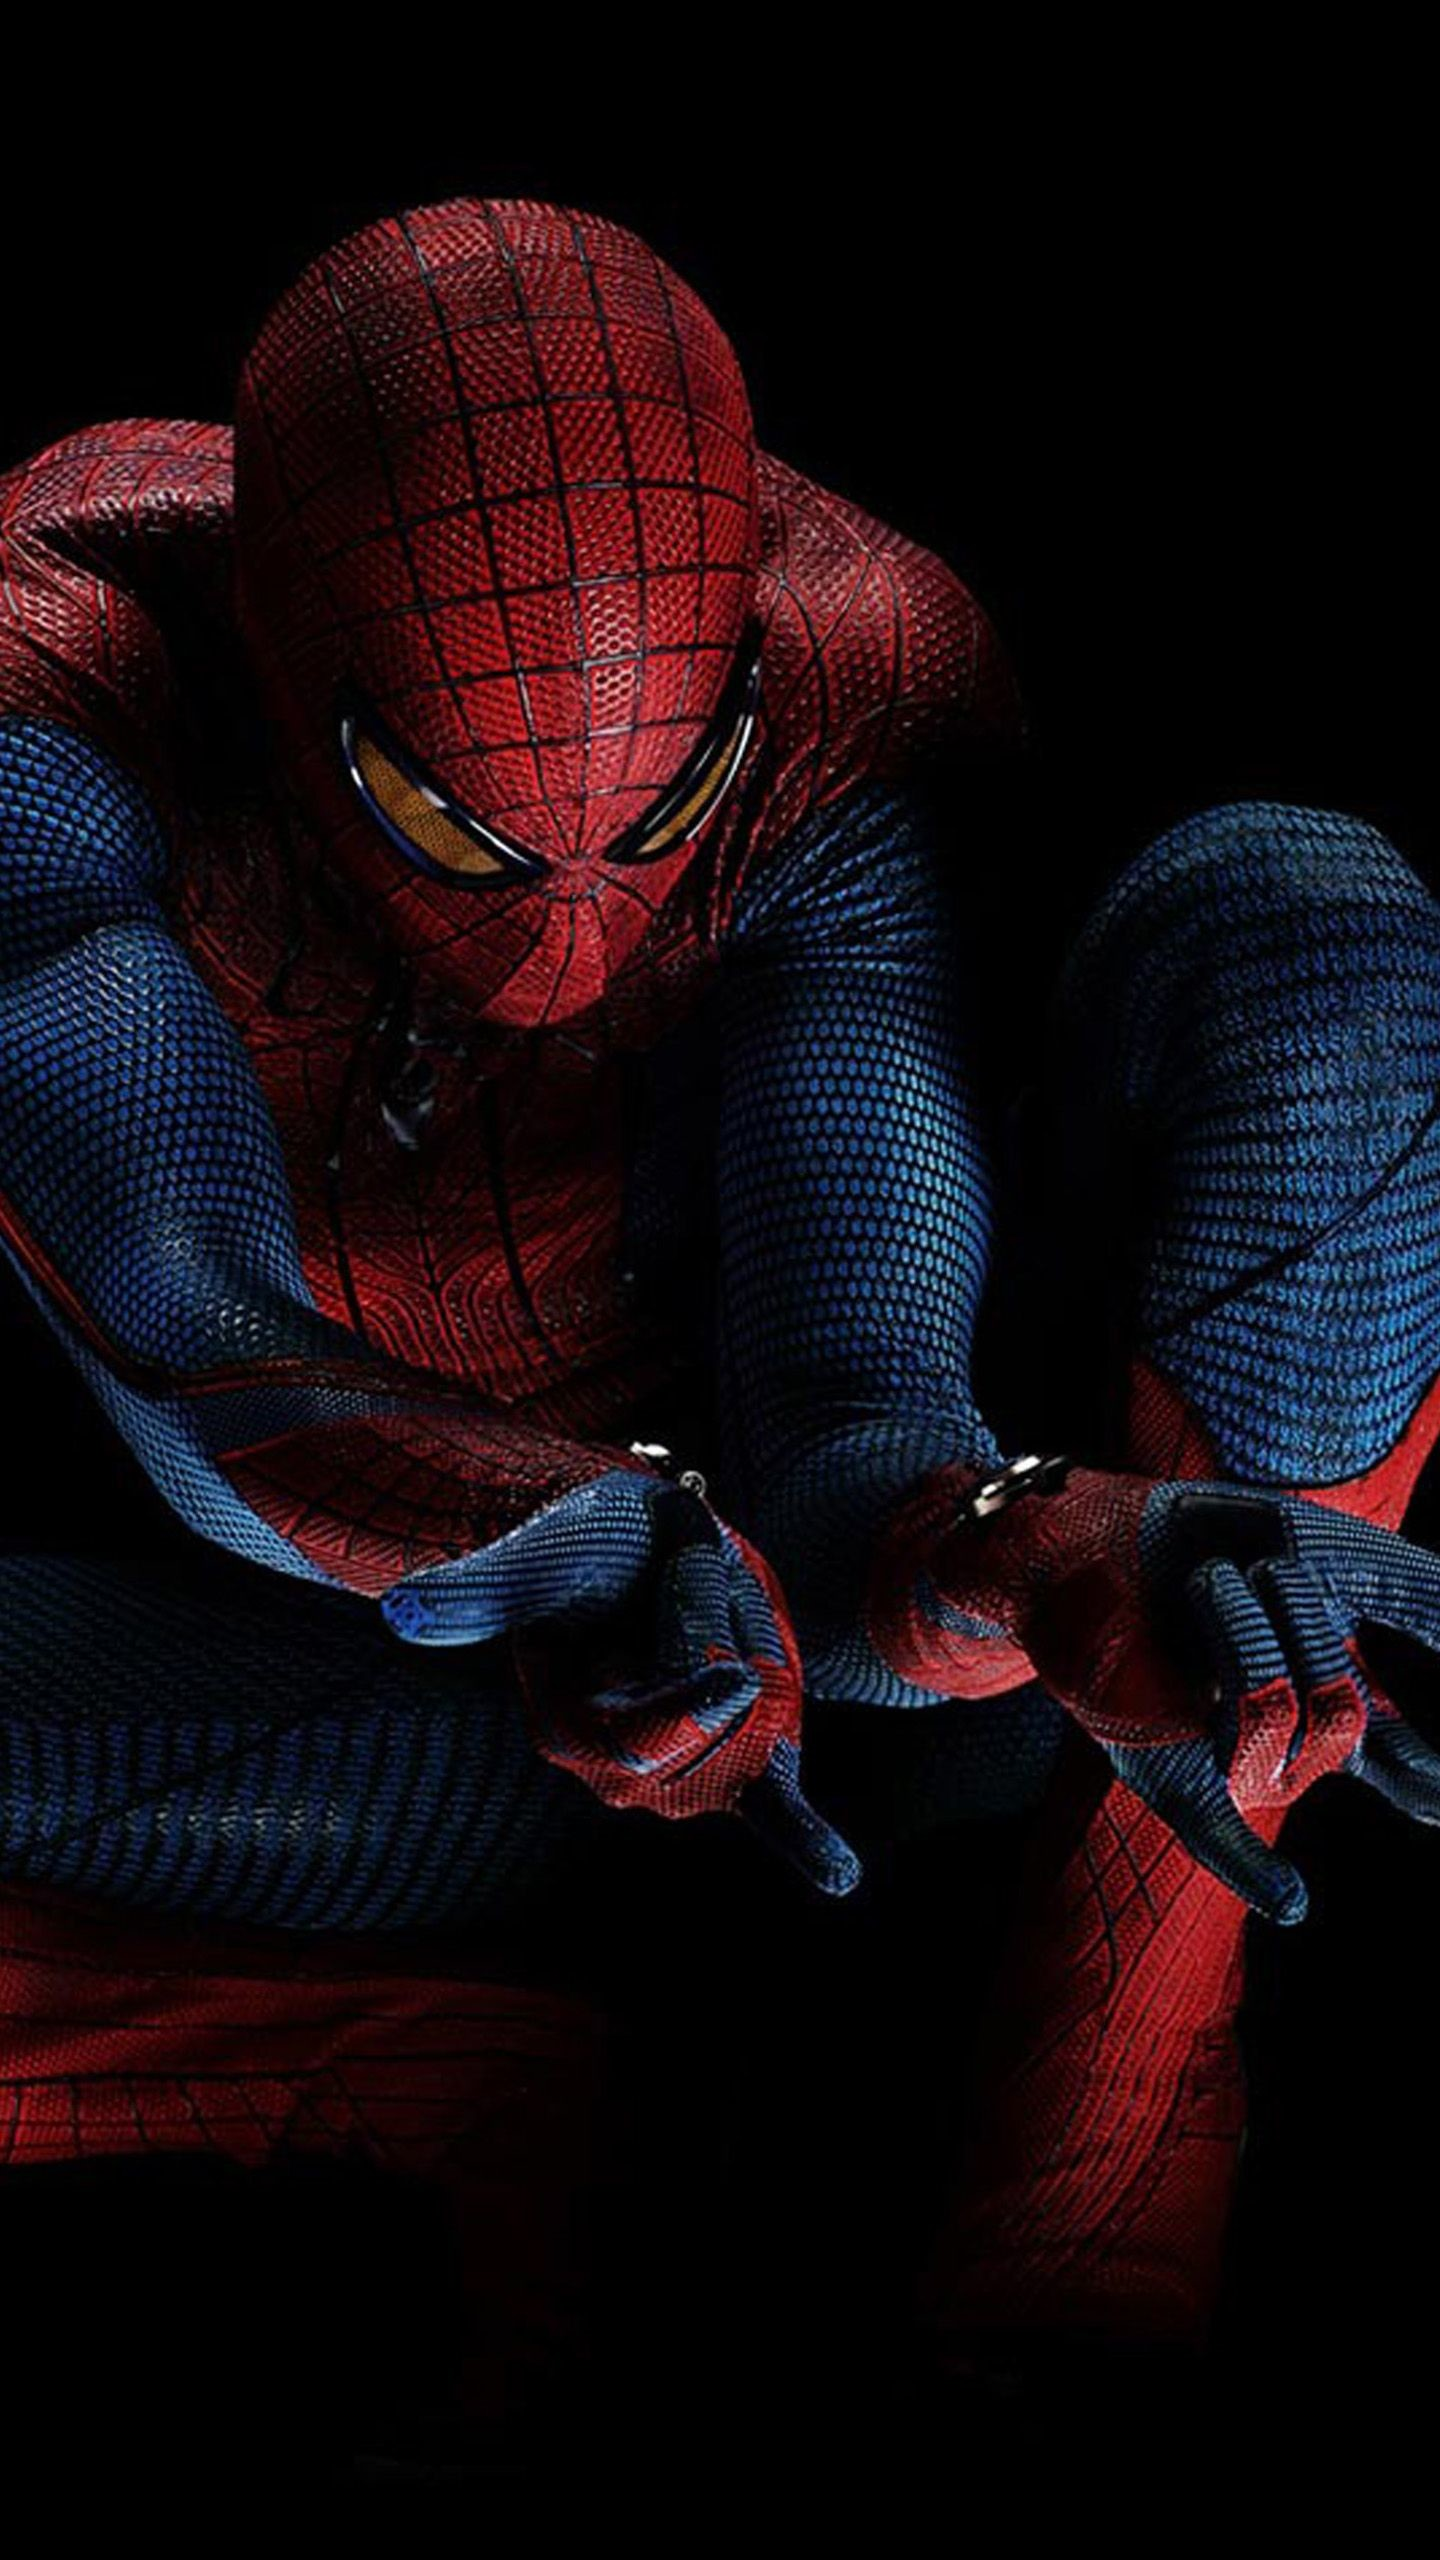 Spiderman wallpapers 79 background pictures - Spider hd images download ...